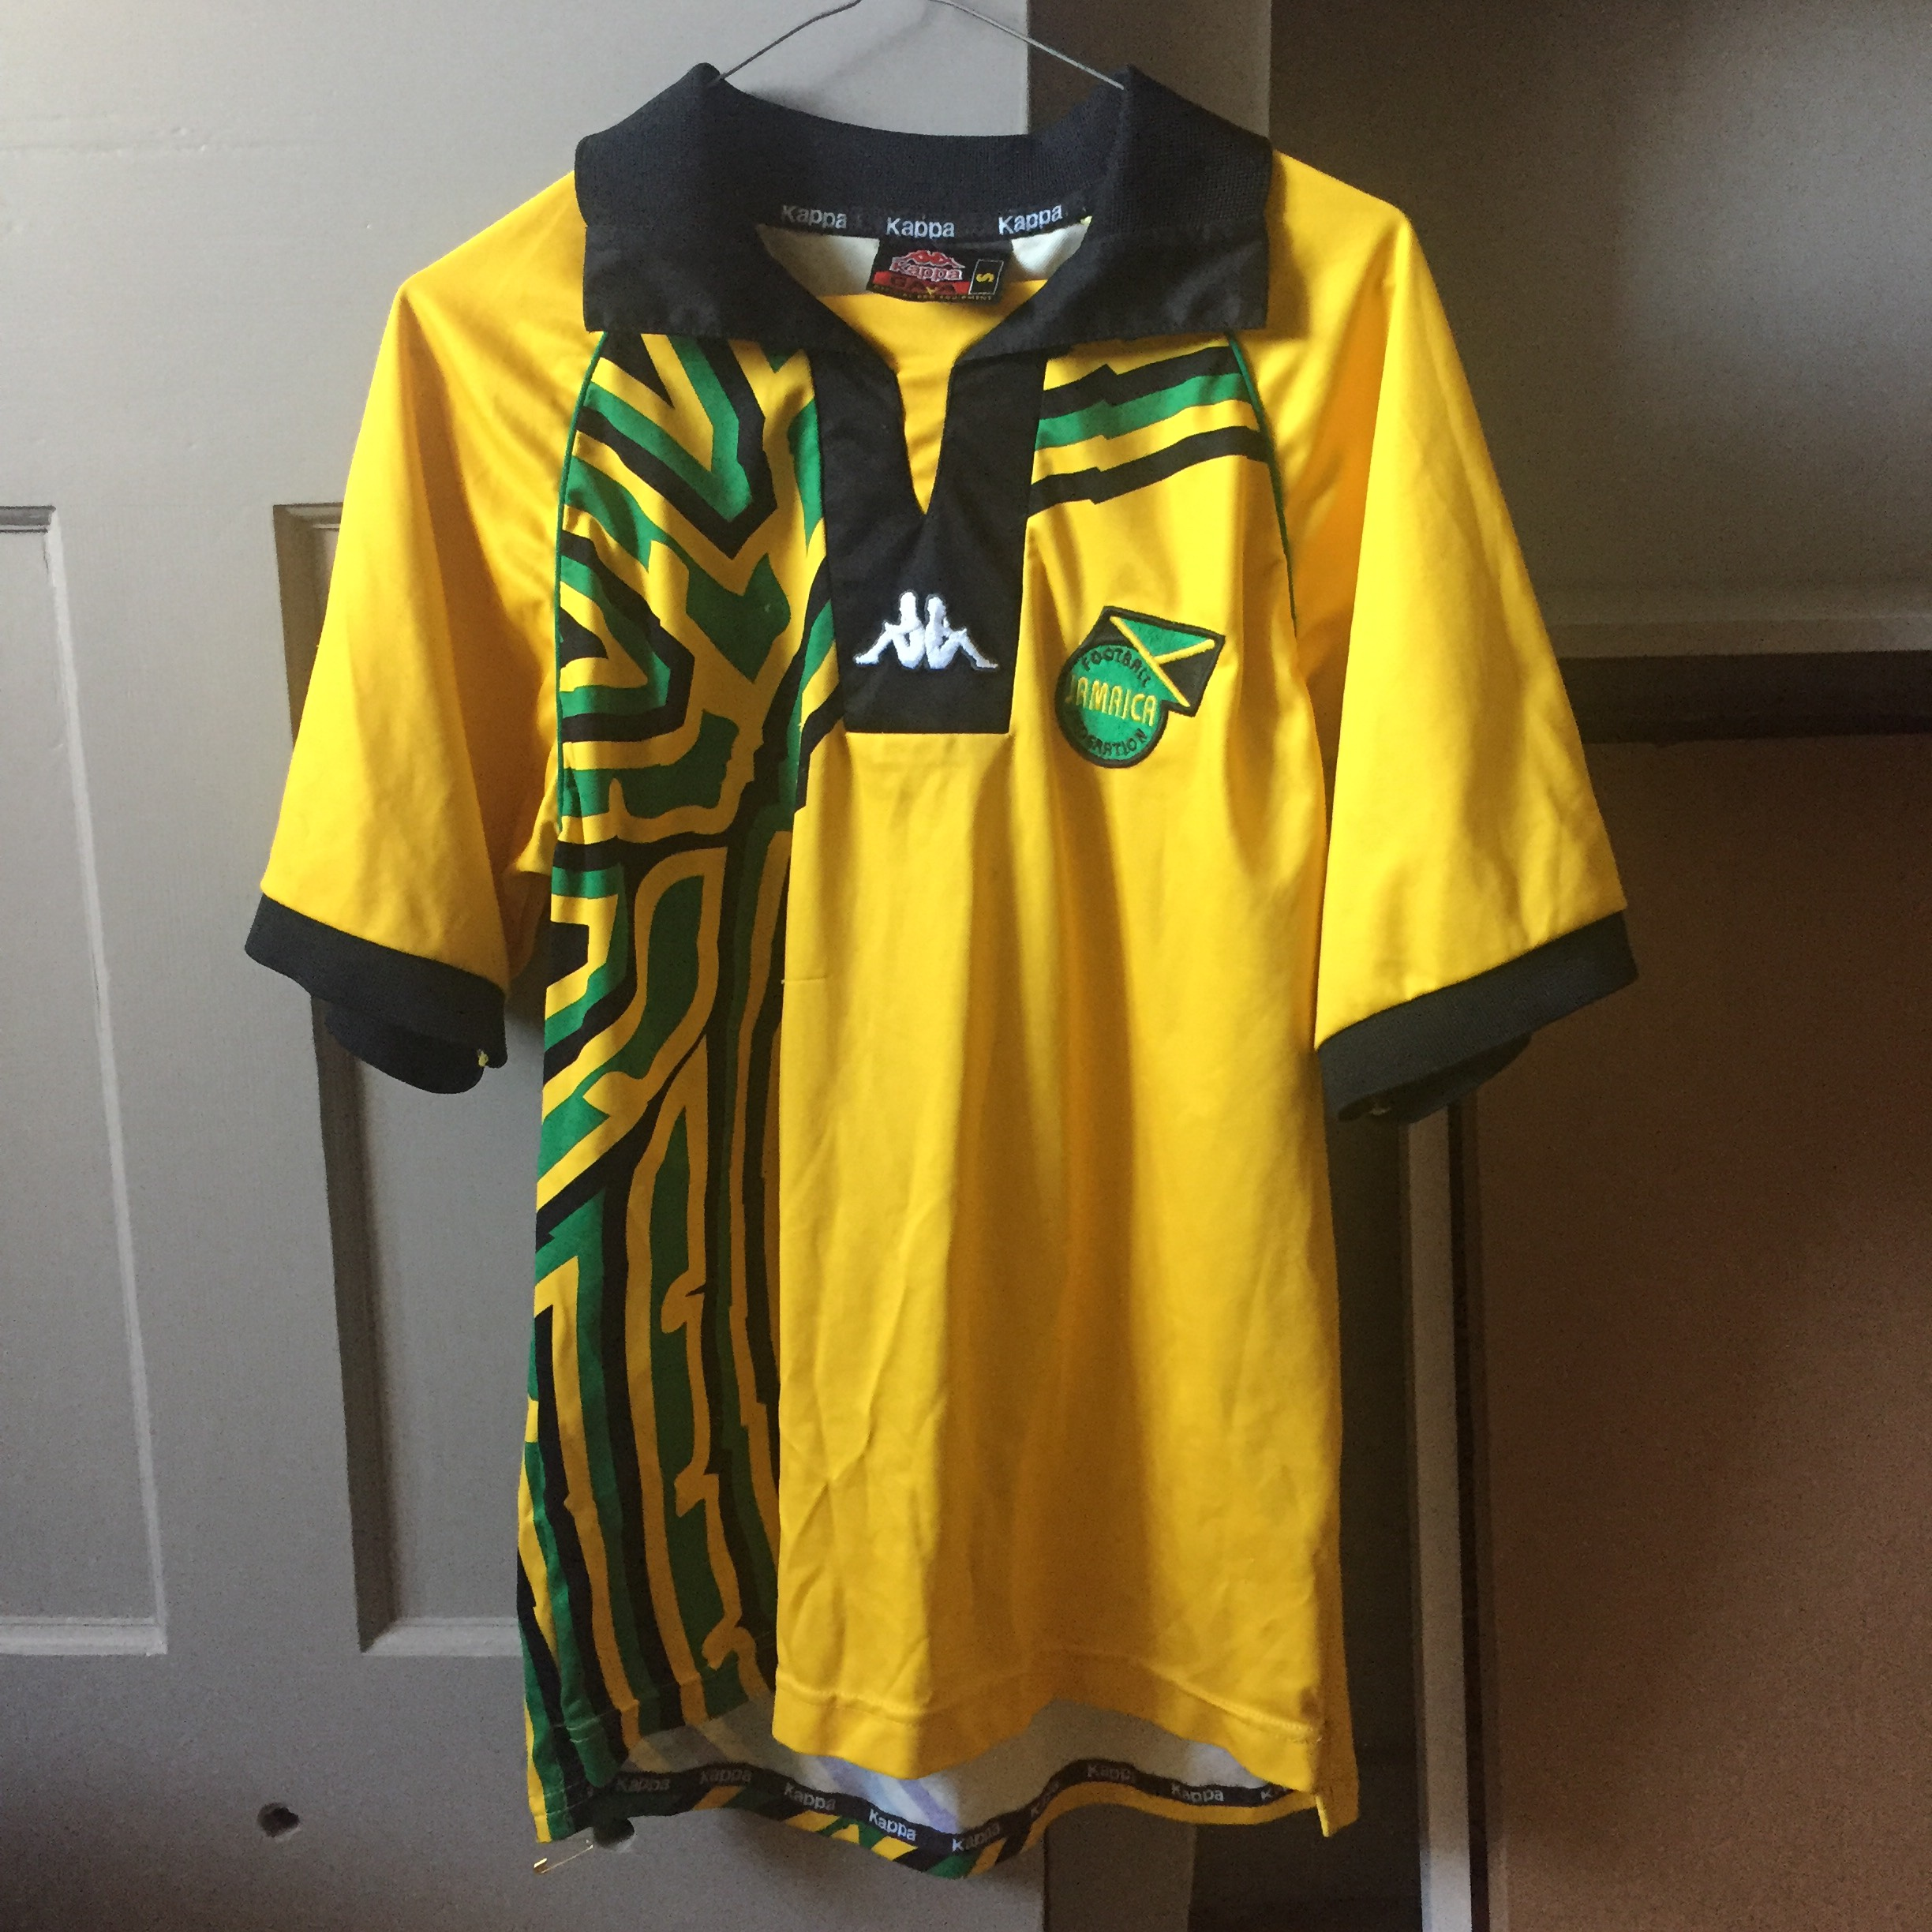 online store a1e03 685b4 Jamaica World Cup 1998 Shirt, Size S, One of the... - Depop